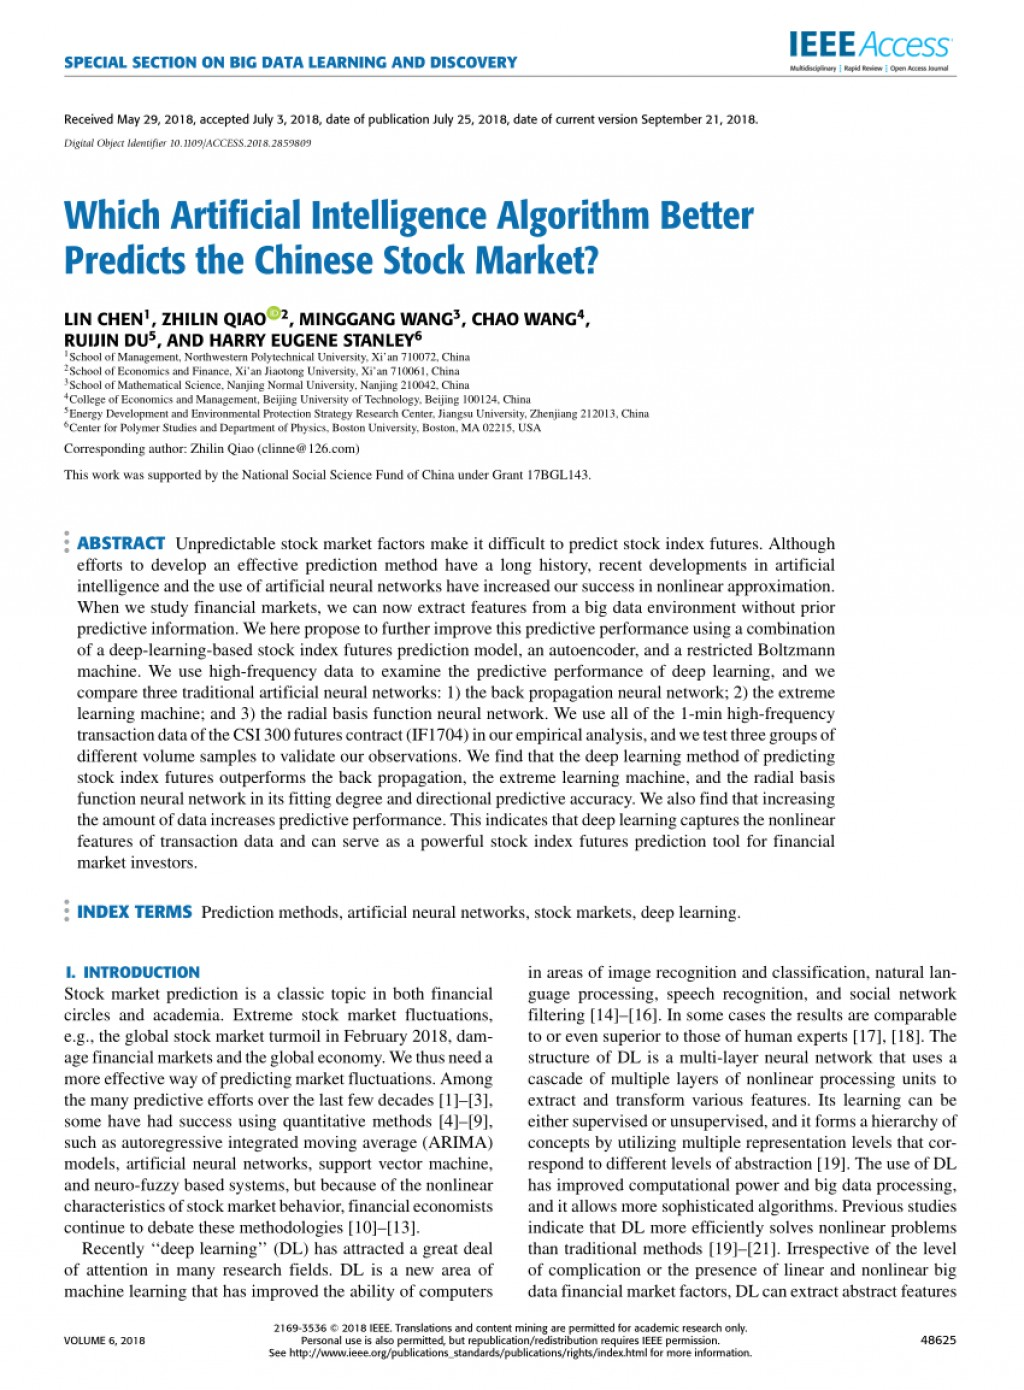 005 Artificial Intelligence Research Paper Ieee Fantastic 2017 Large